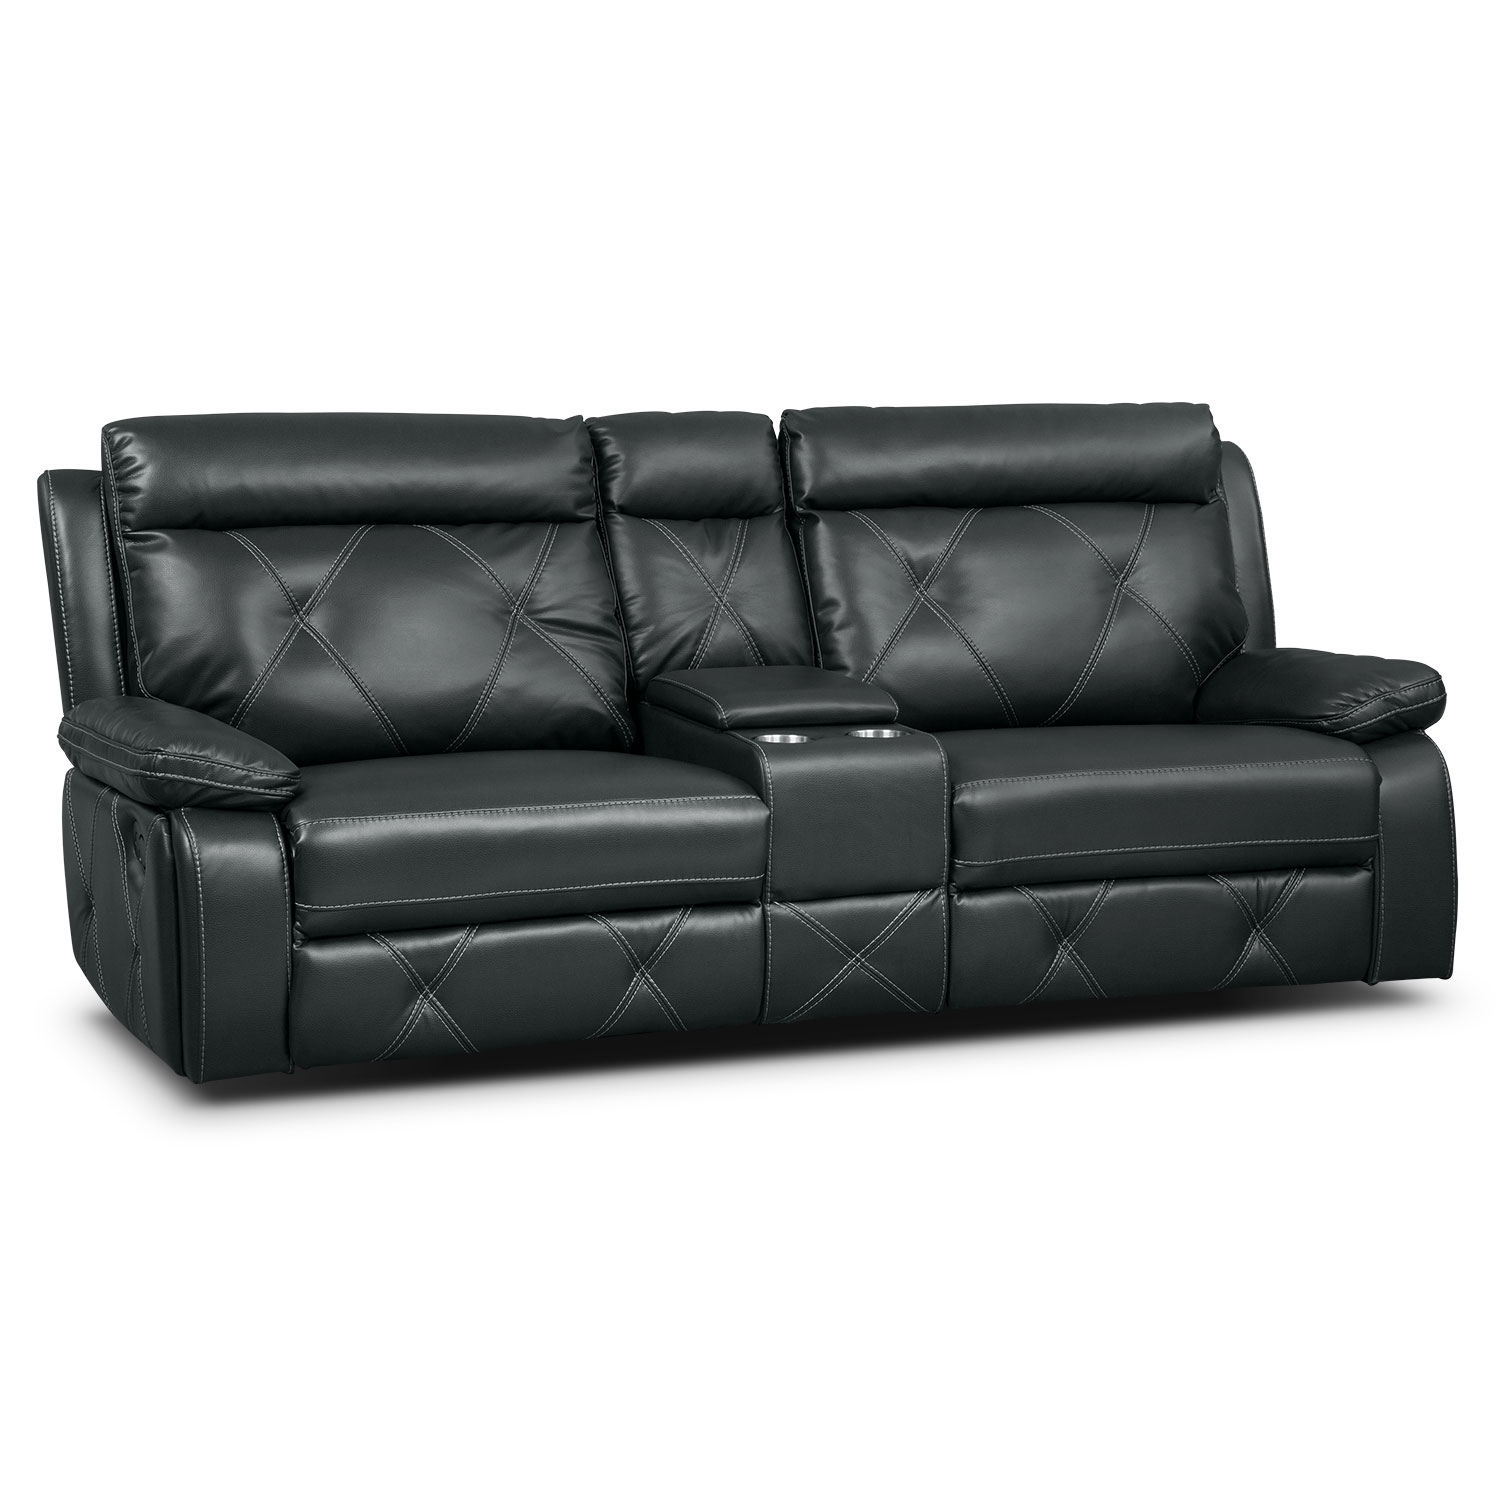 Living Room Furniture - Dante 3-Piece Reclining Sofa with Console - Charcoal